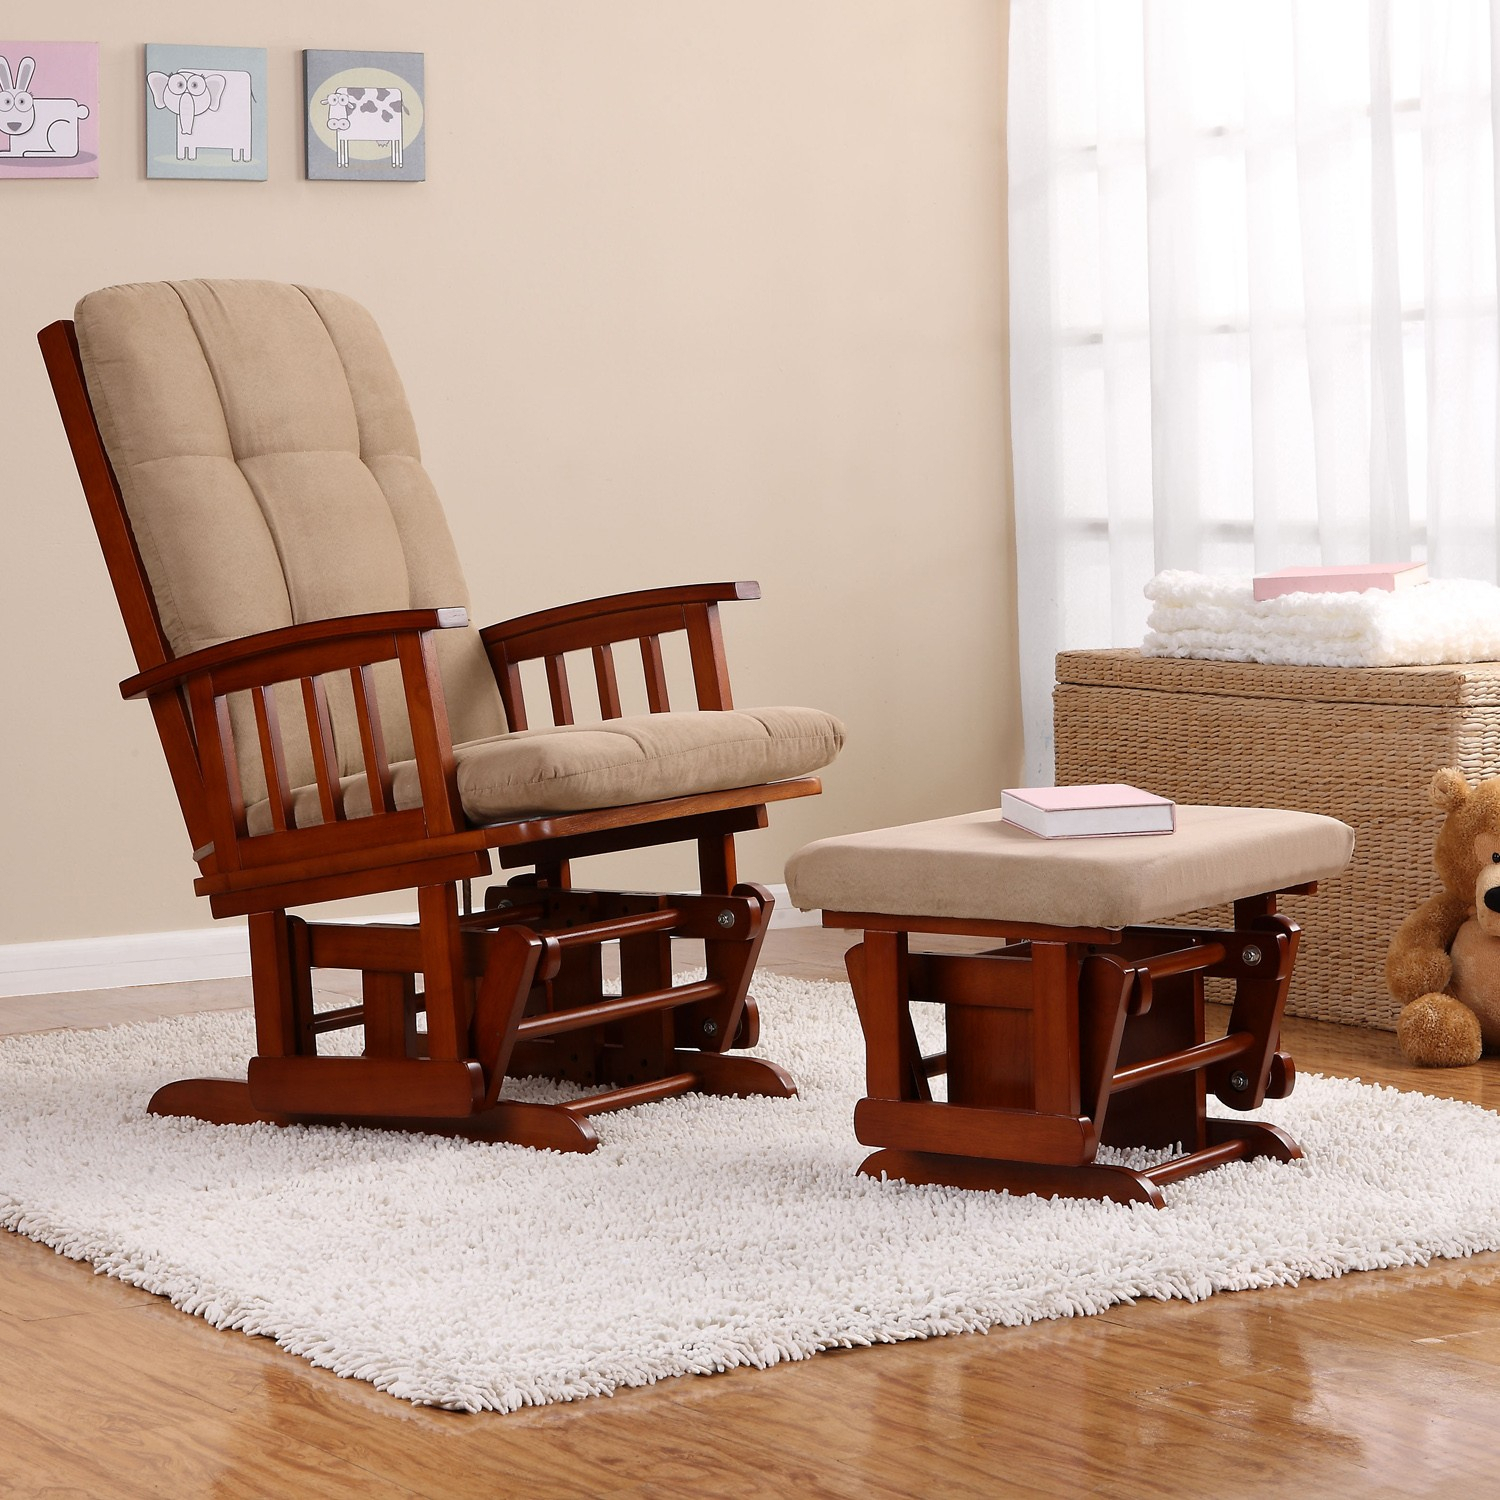 Living Room : Trendy Living Room Rocking Chair Ideas With Throughout Wooden Rocking Chairs With Fabric Upholstered Cushions, White (View 12 of 20)